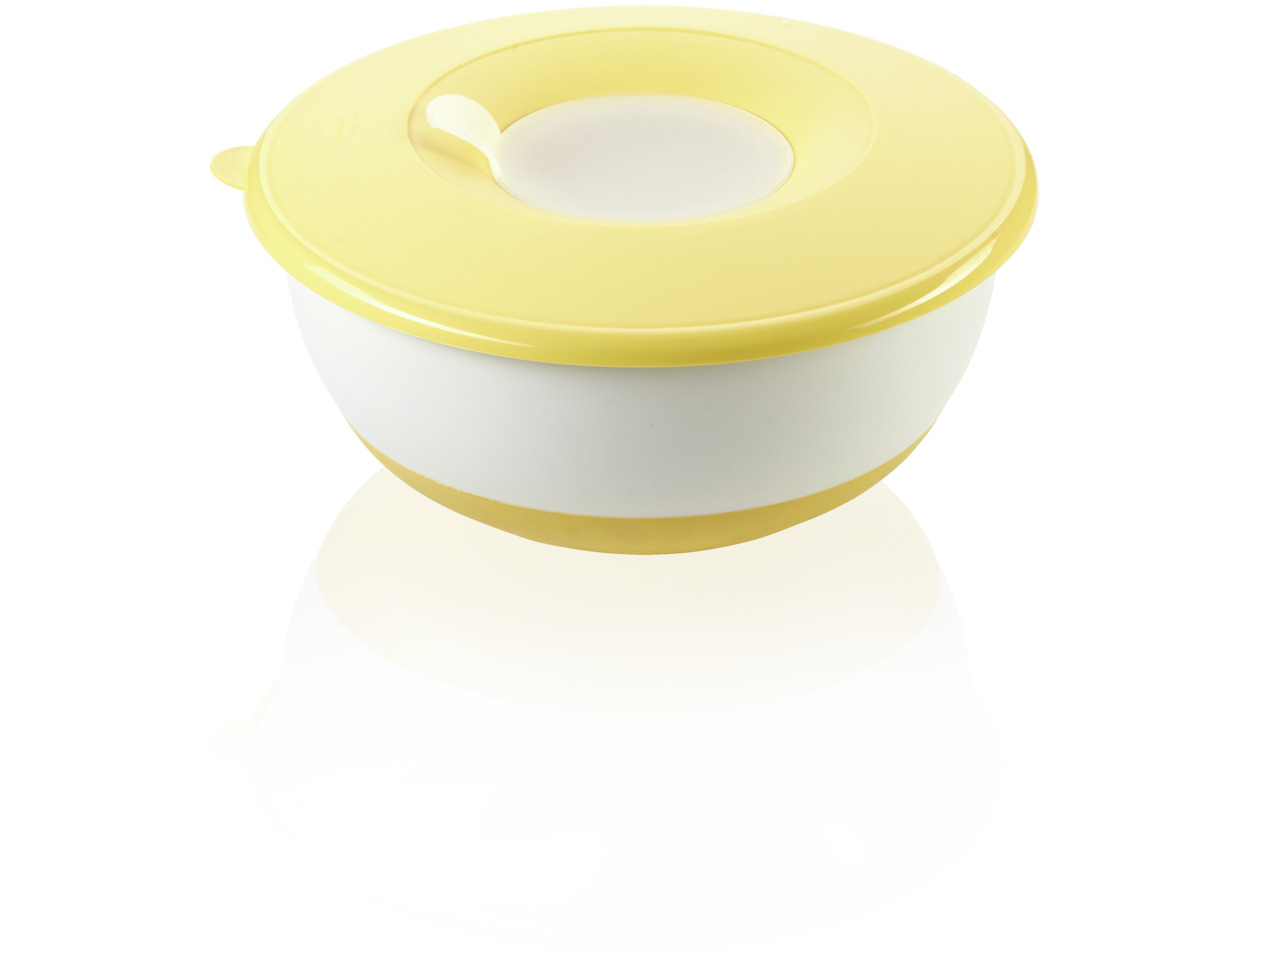 LEIFHEIT 3170 3in1 mixing bowl Mix & Store 3,2L